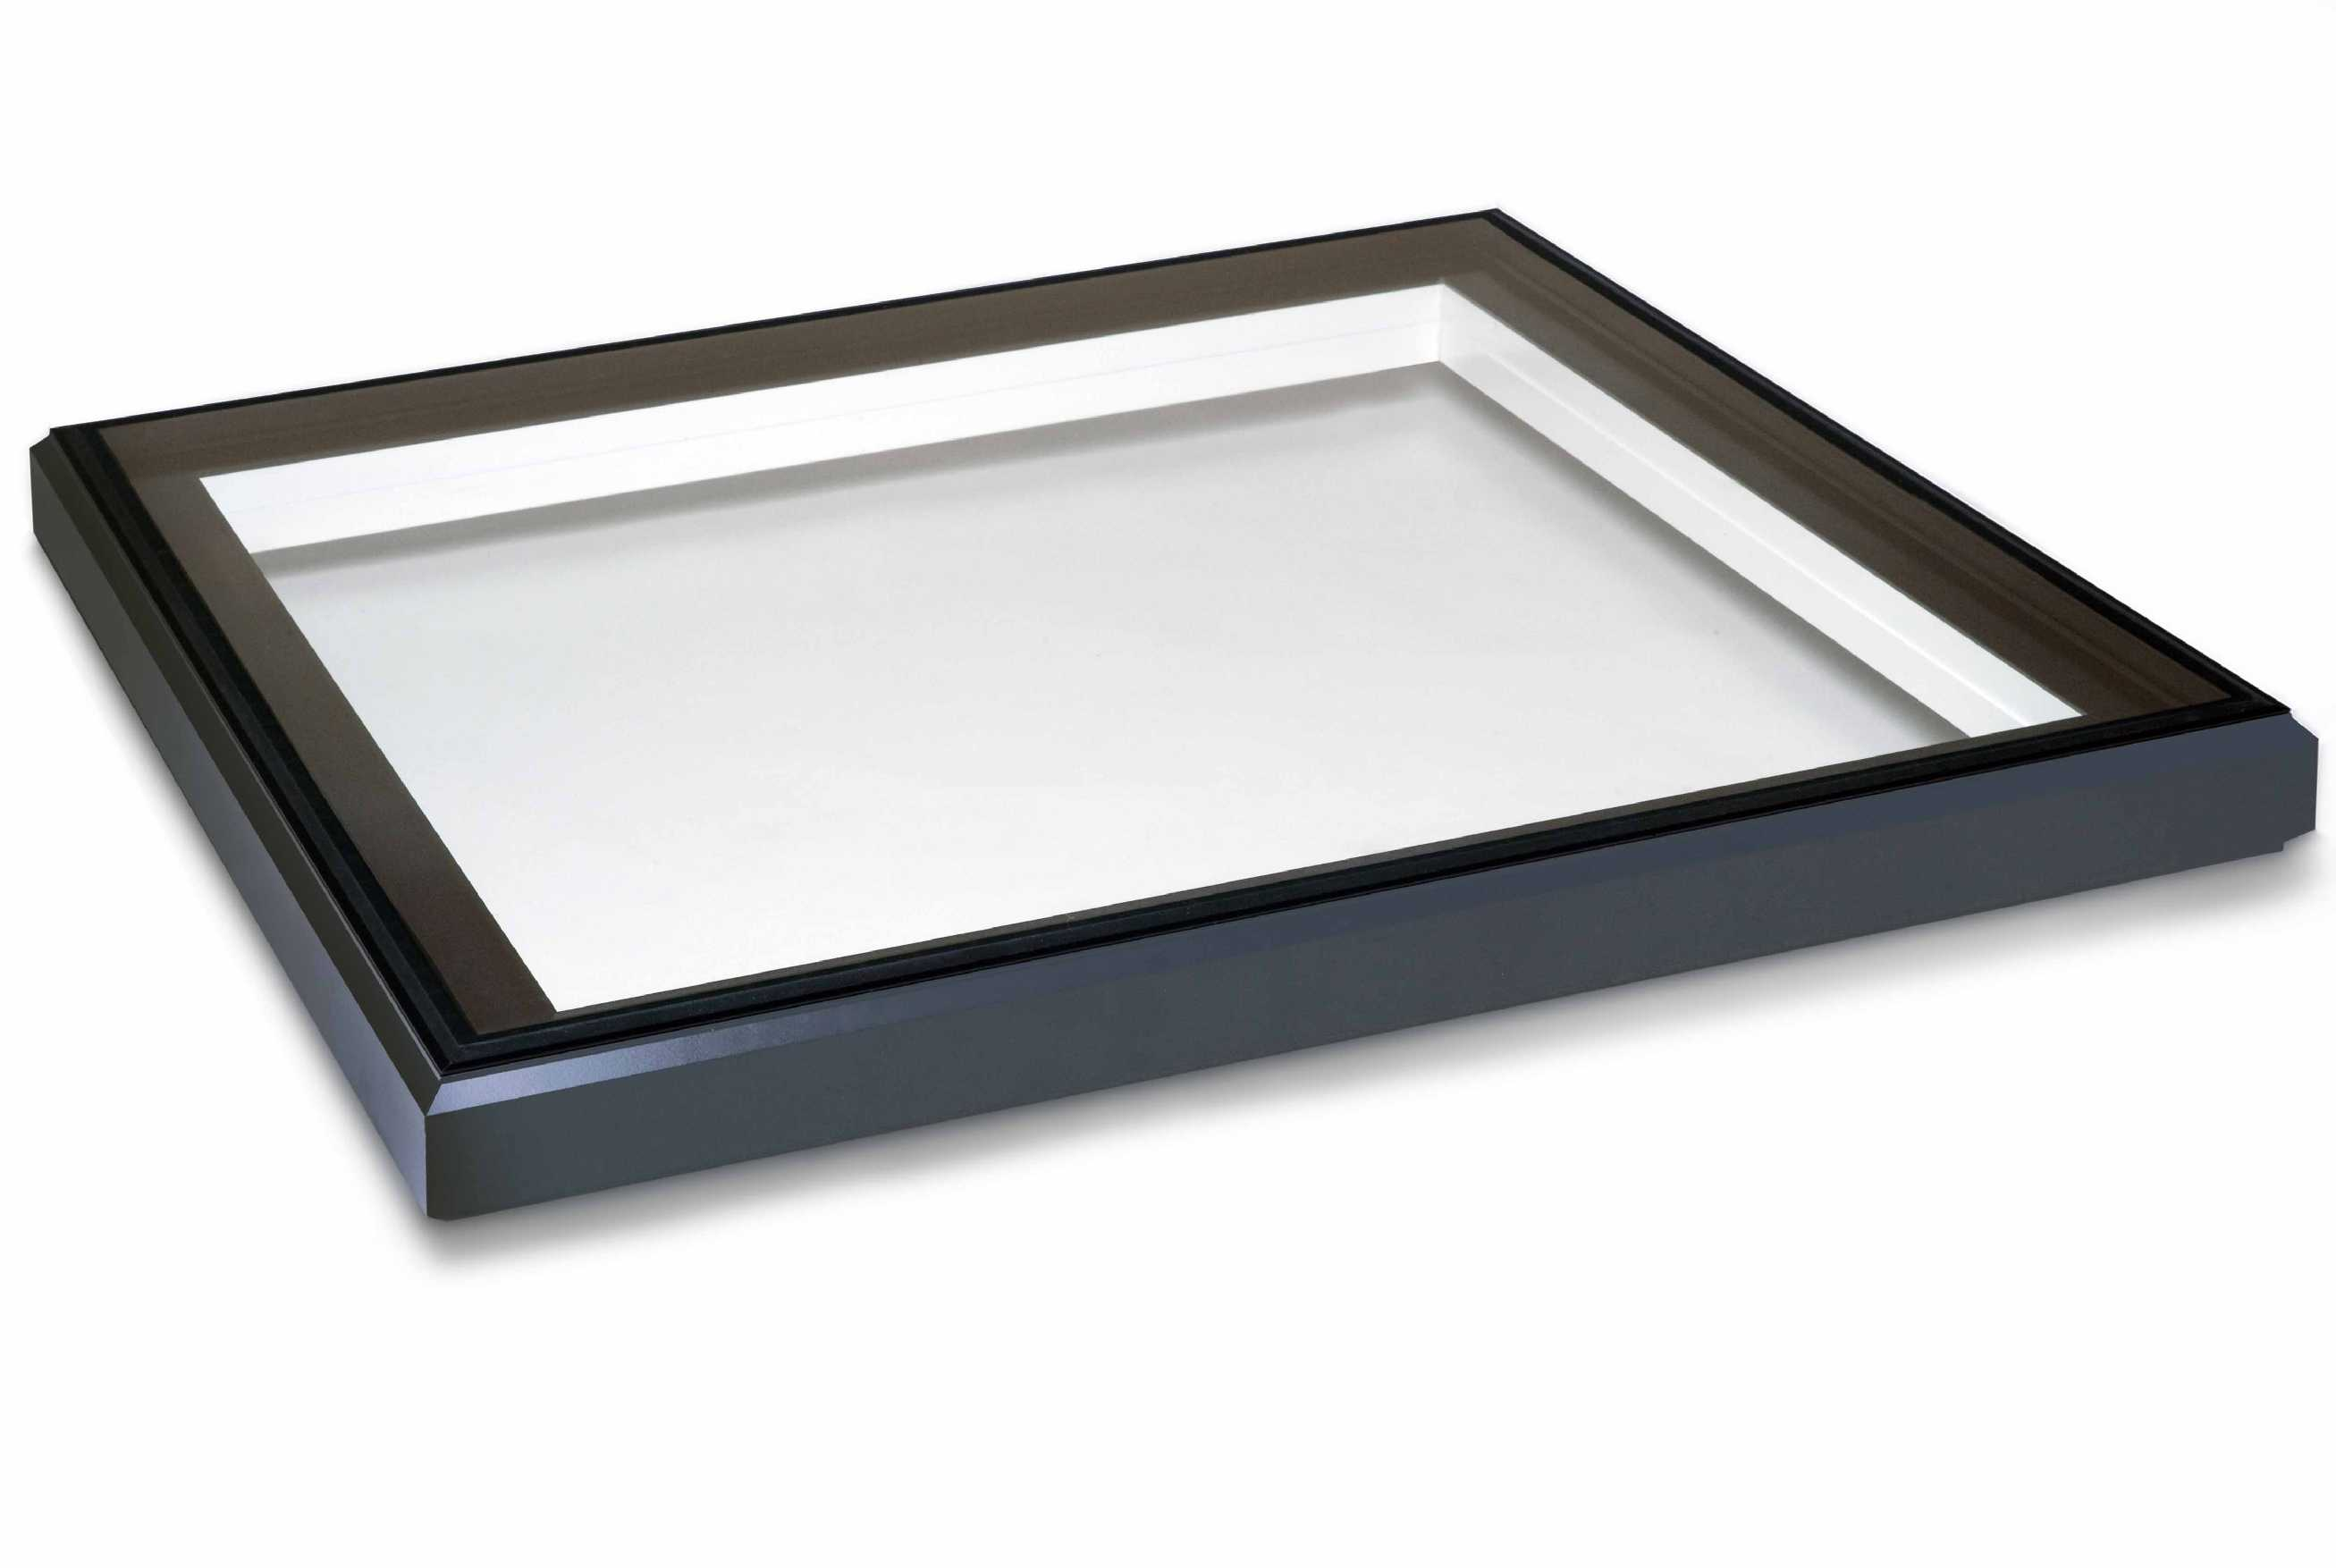 Buy EcoGard Flat Roof light, Triple Glazed, Electric Opening, 1,000mm x 1,500mm online today